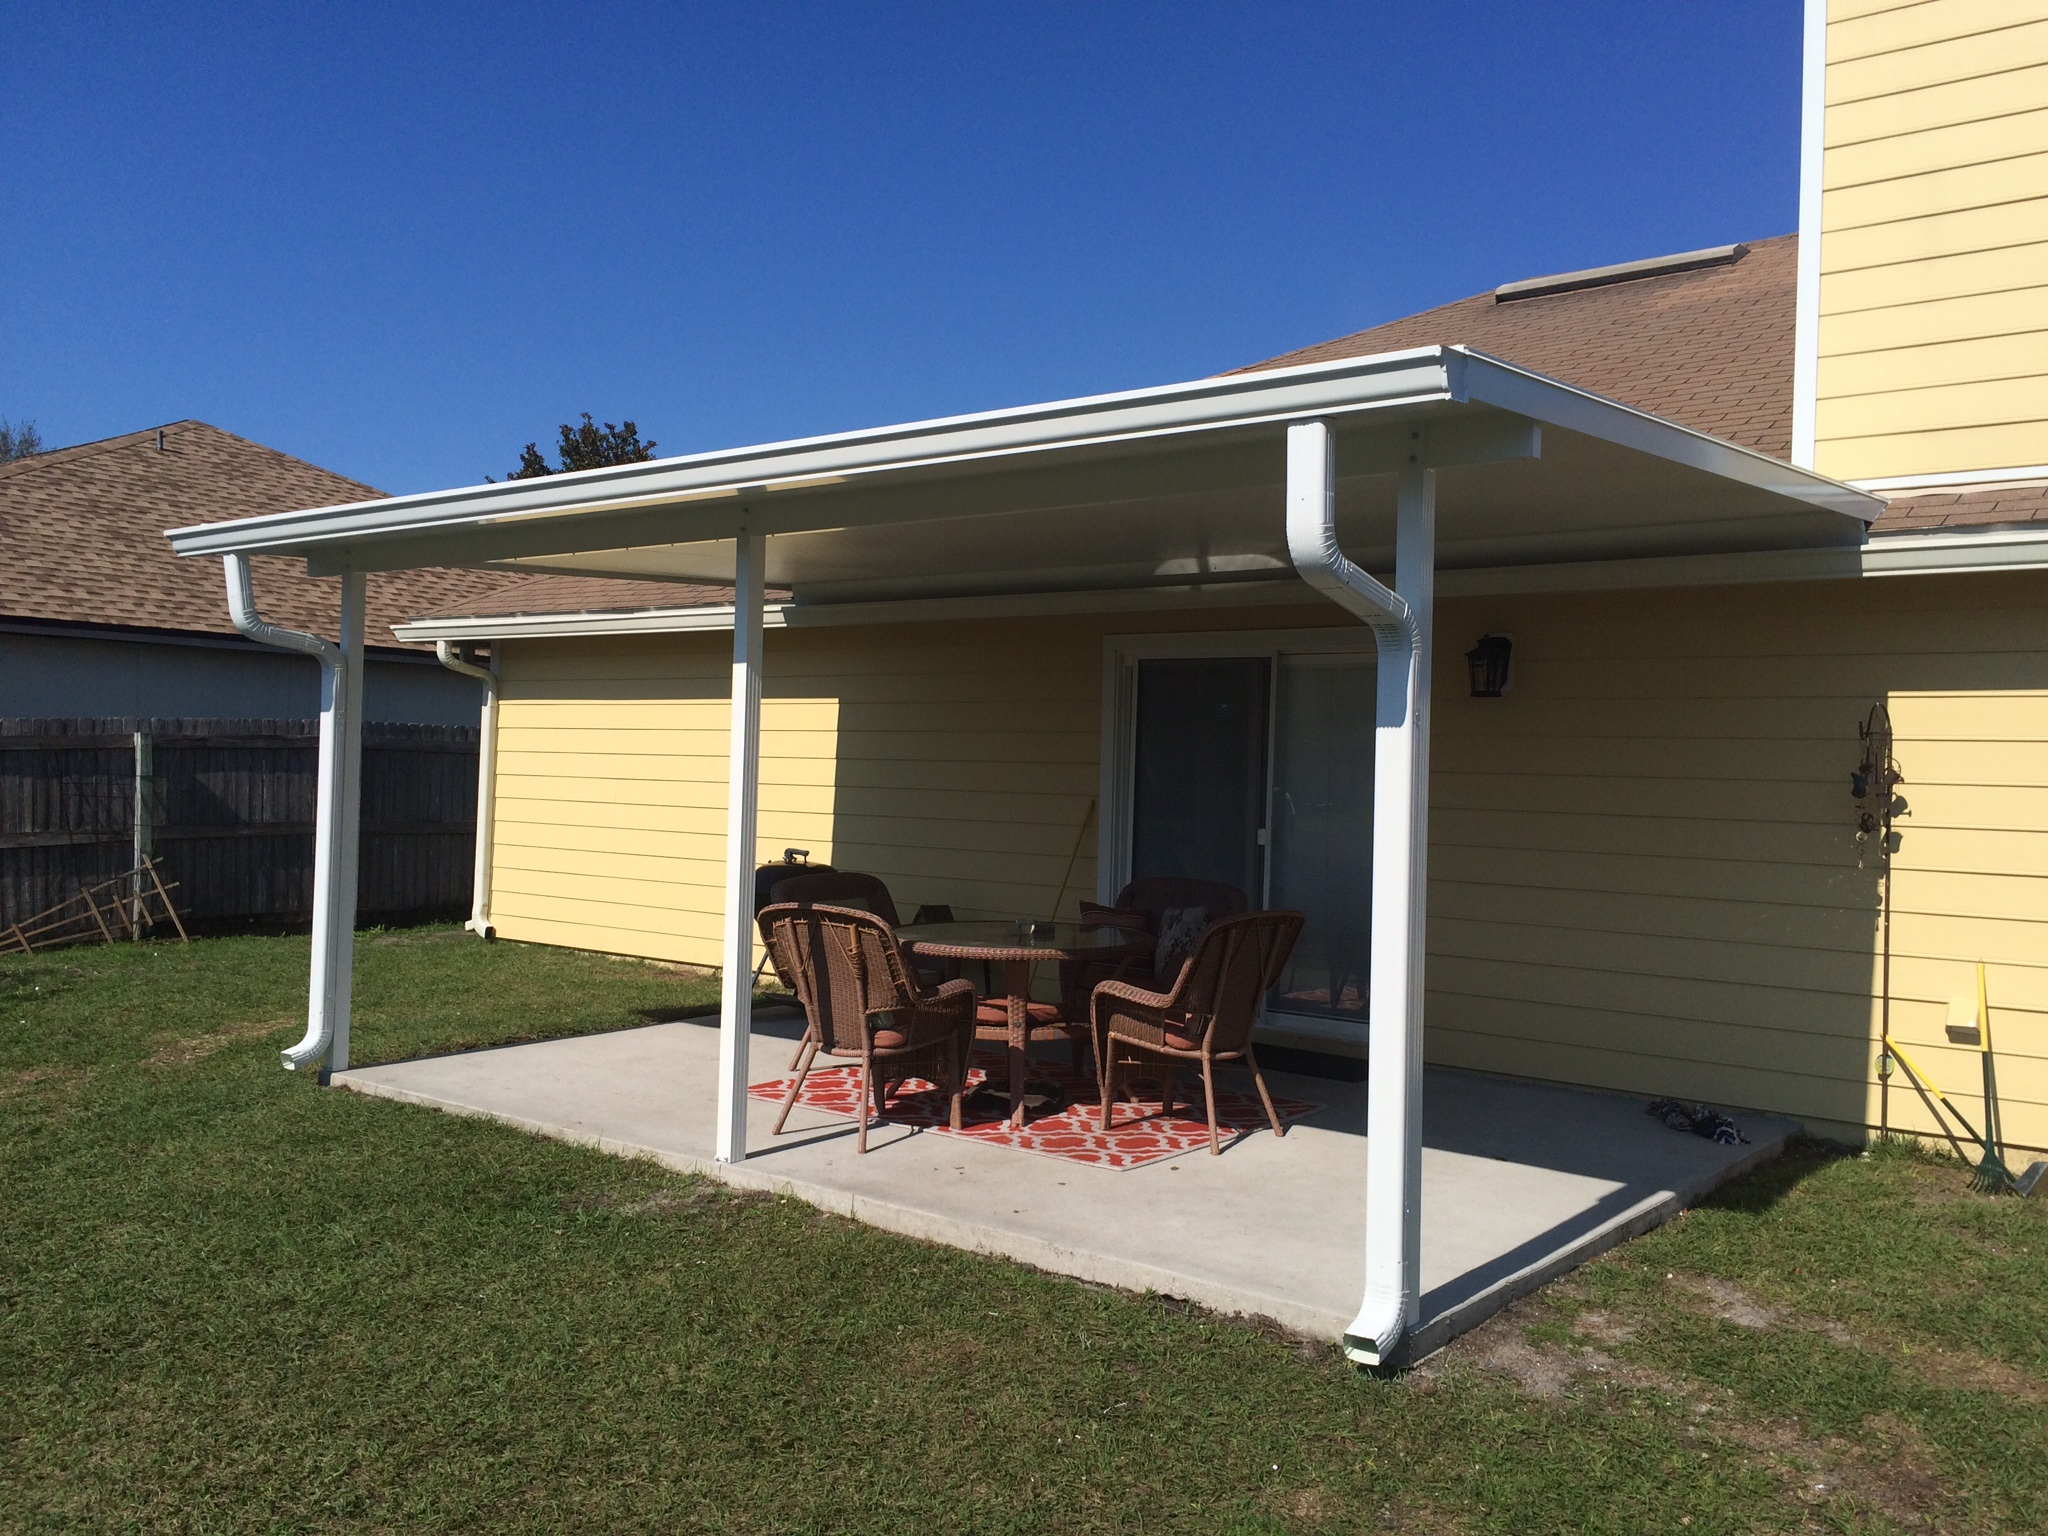 Patio Covers Amp Carport Roofs M Daigle Amp Sons